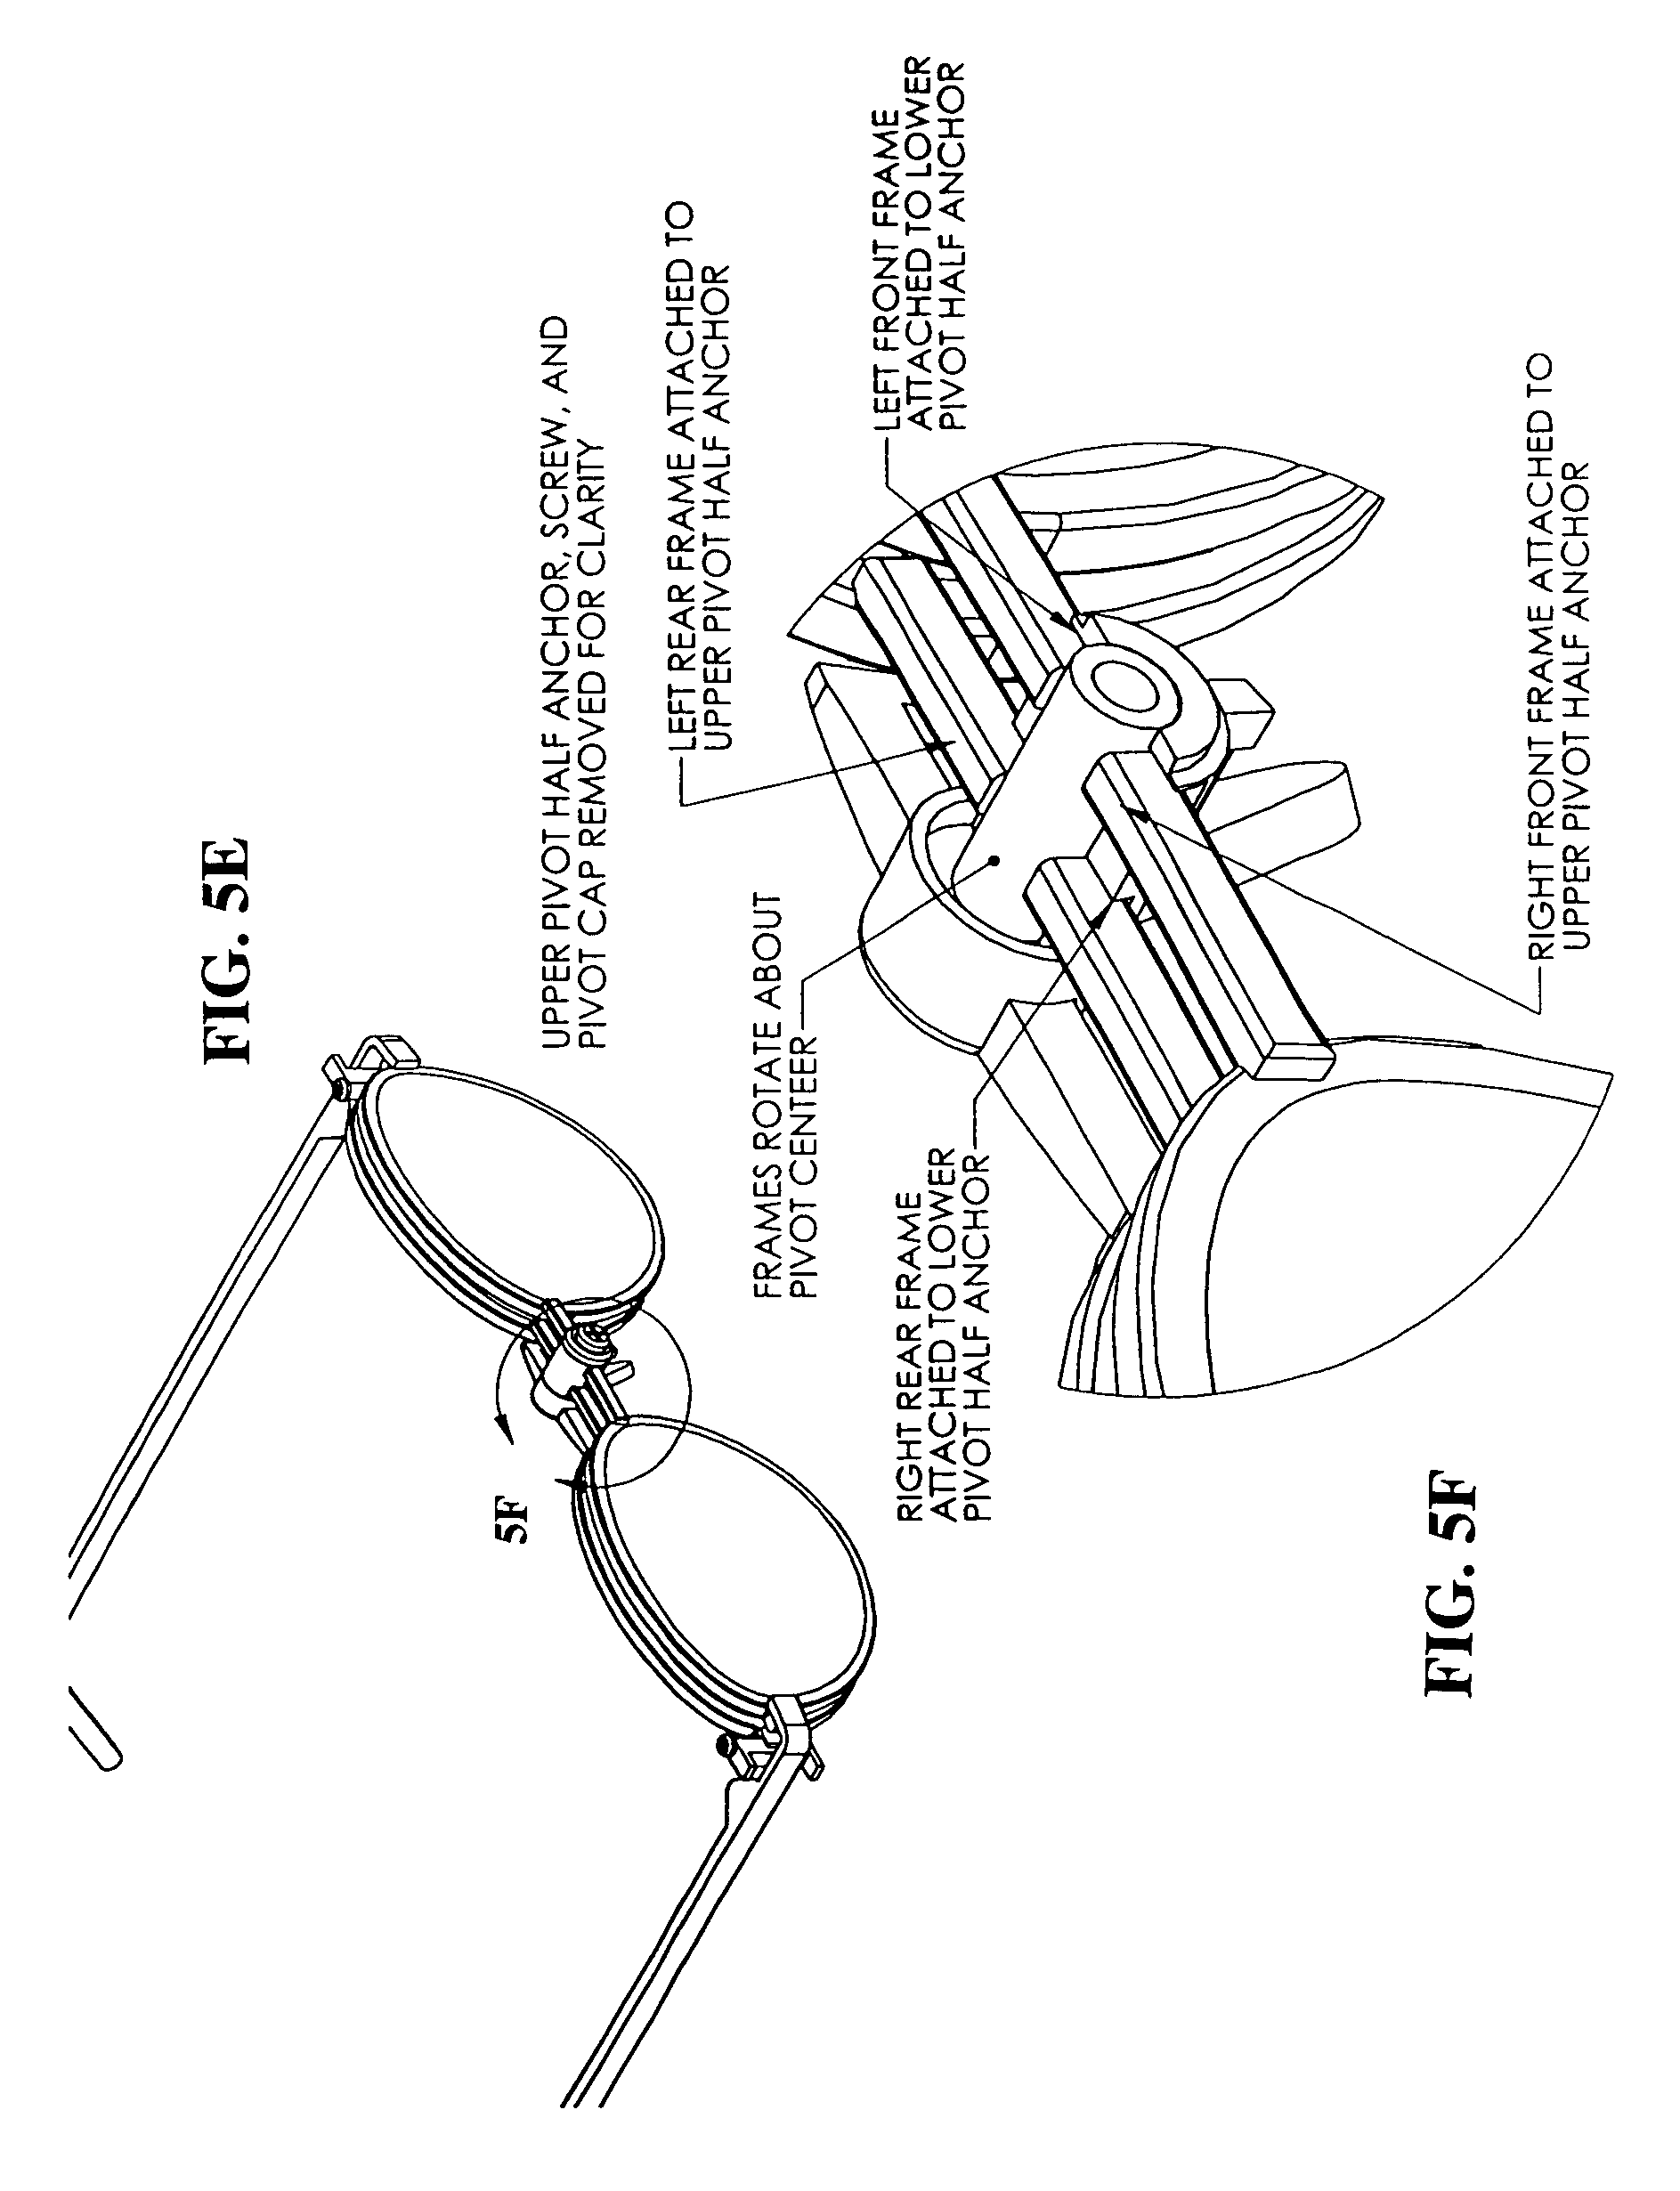 Patent Us7717552 Adjustable Focus Eyeglasses With Pivot Ford 460 Starter Wiring Diagram Drawing